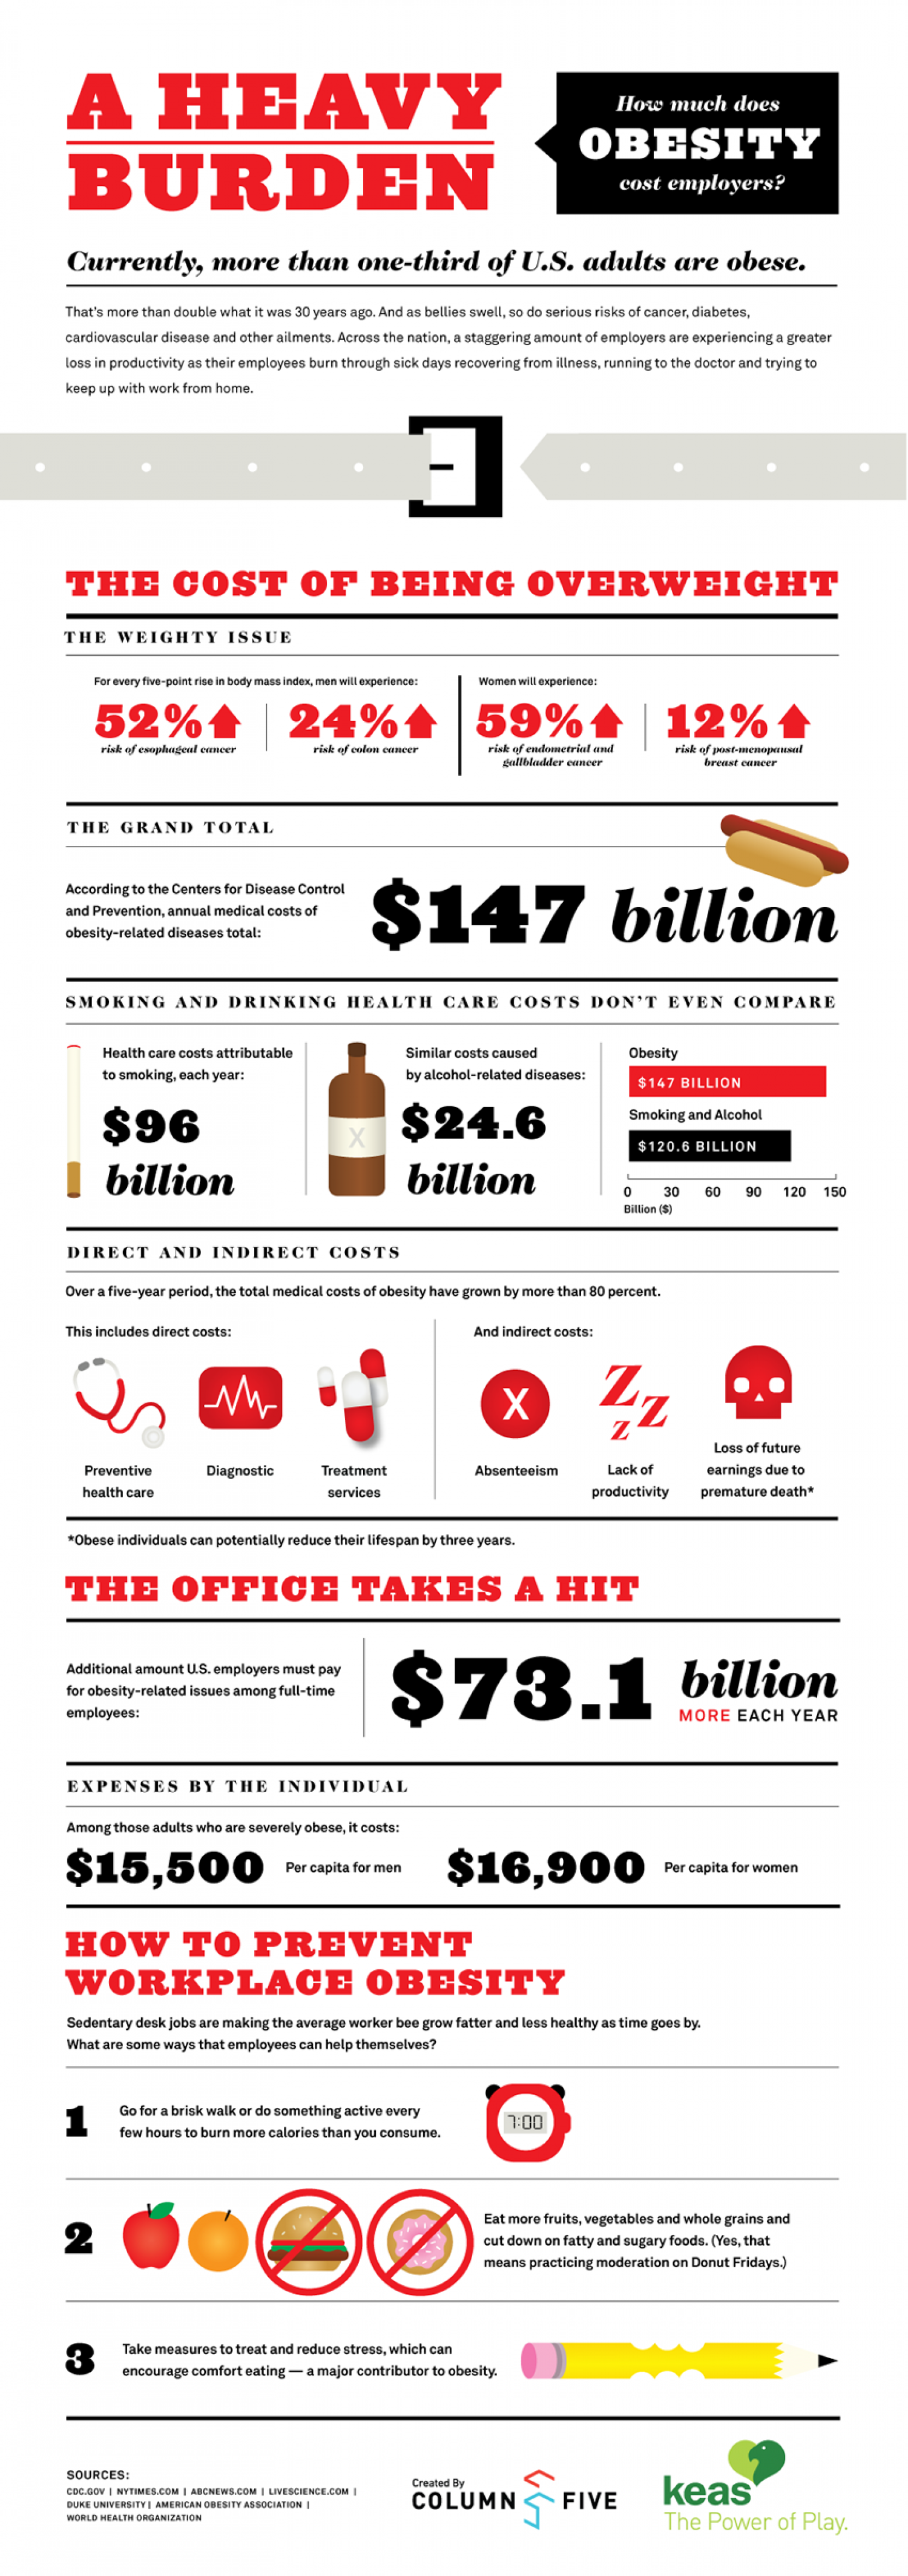 How Much Does Obesity Cost Employers? Infographic